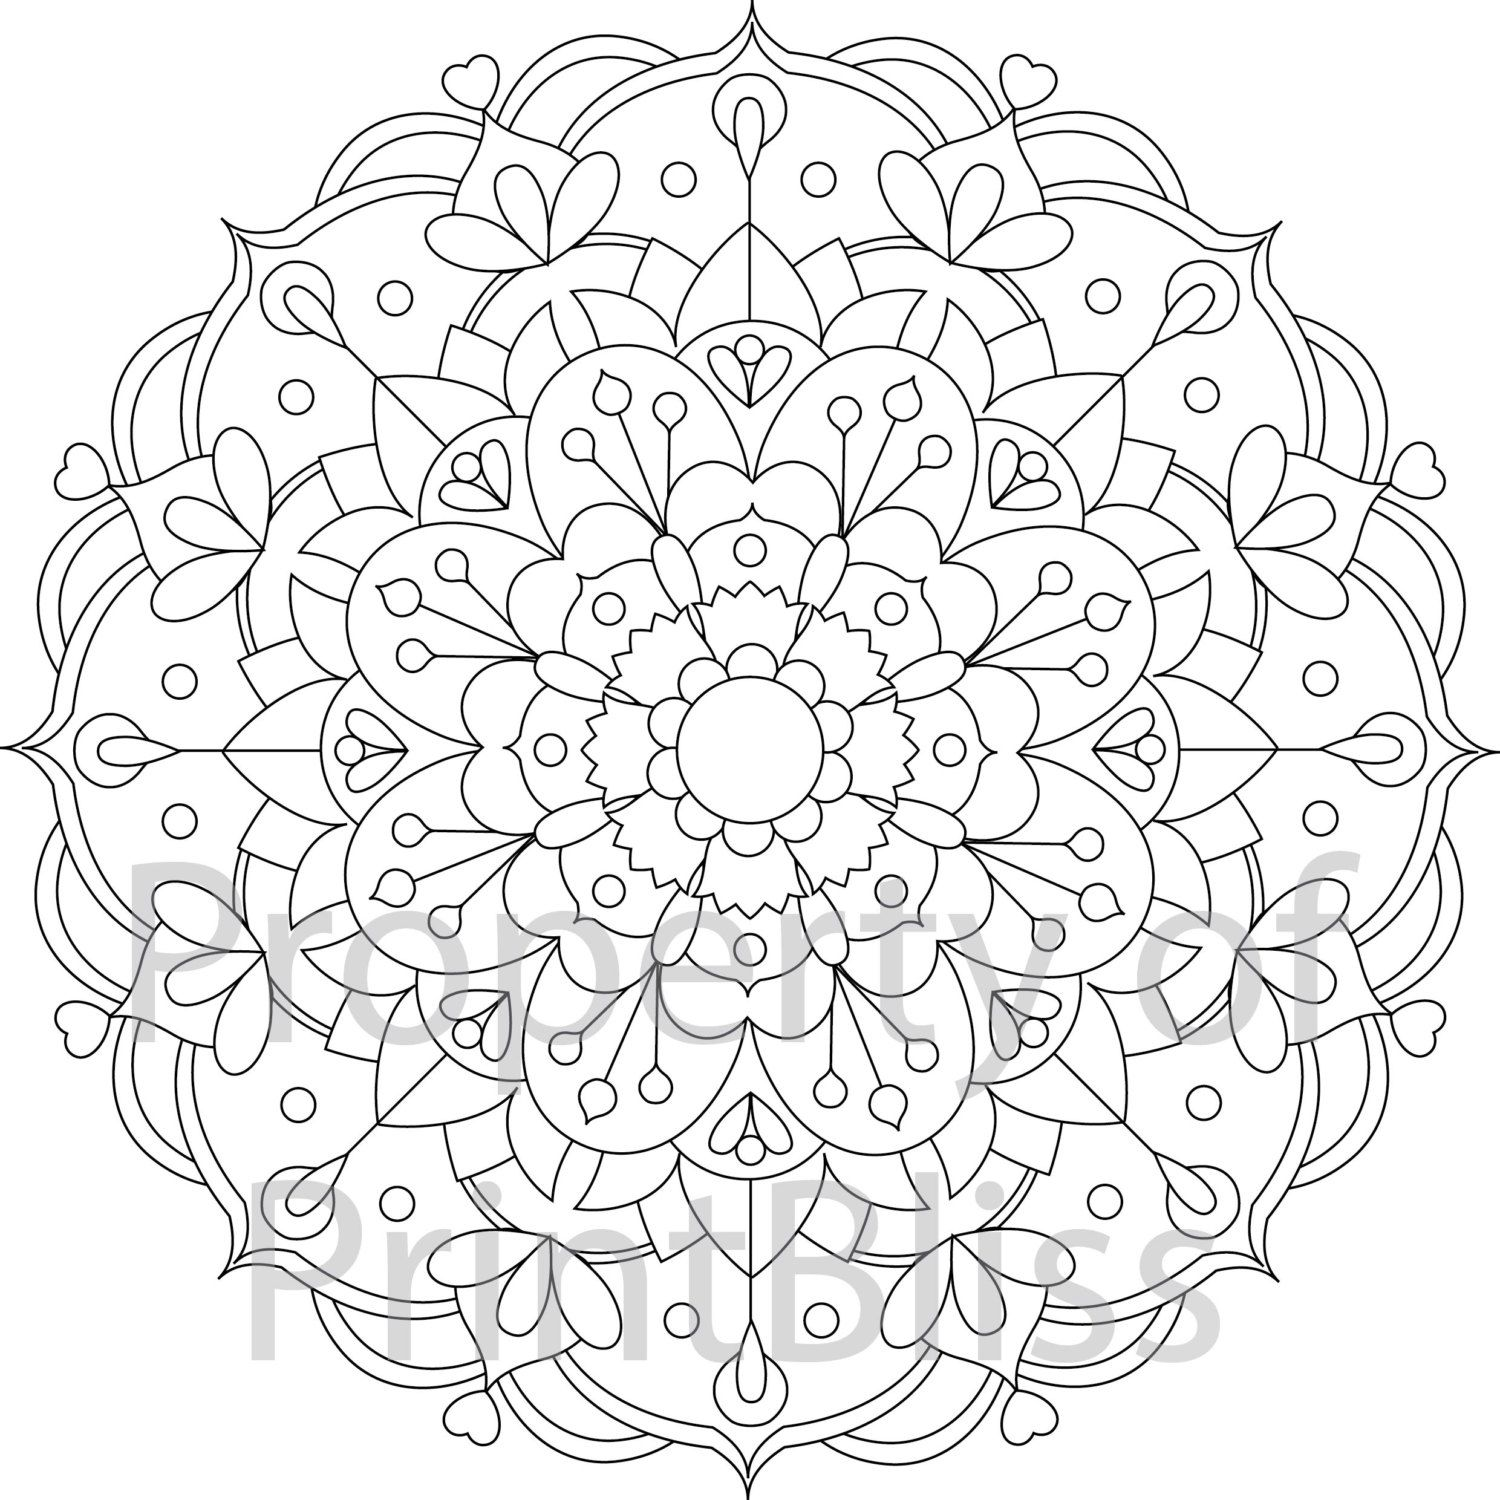 23 Flower Mandala printable coloring page